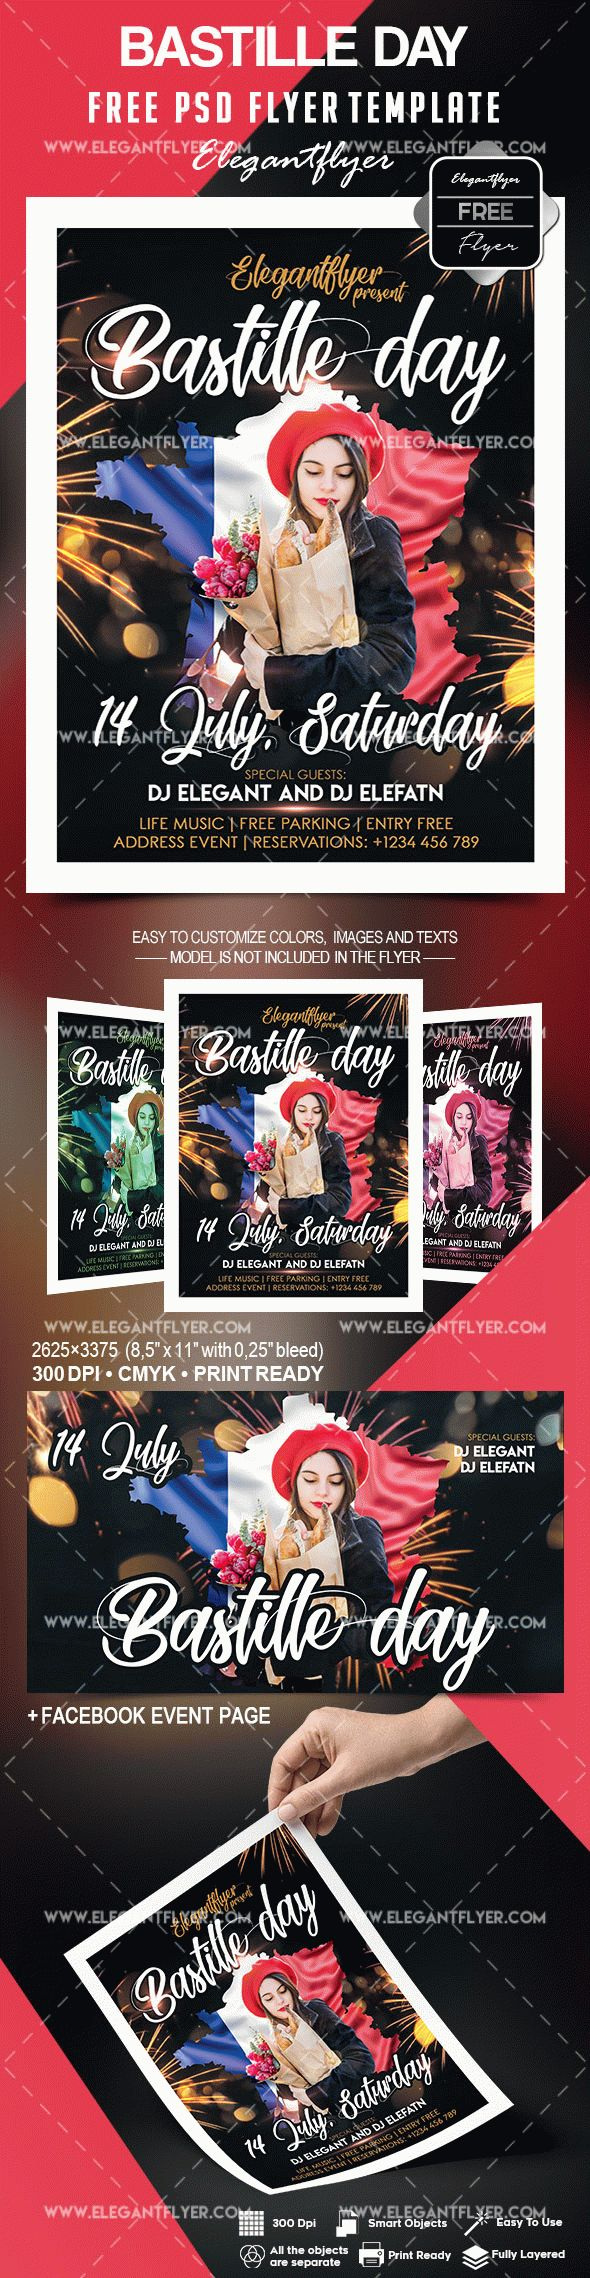 Bastille Day – Free Flyer PSD Template